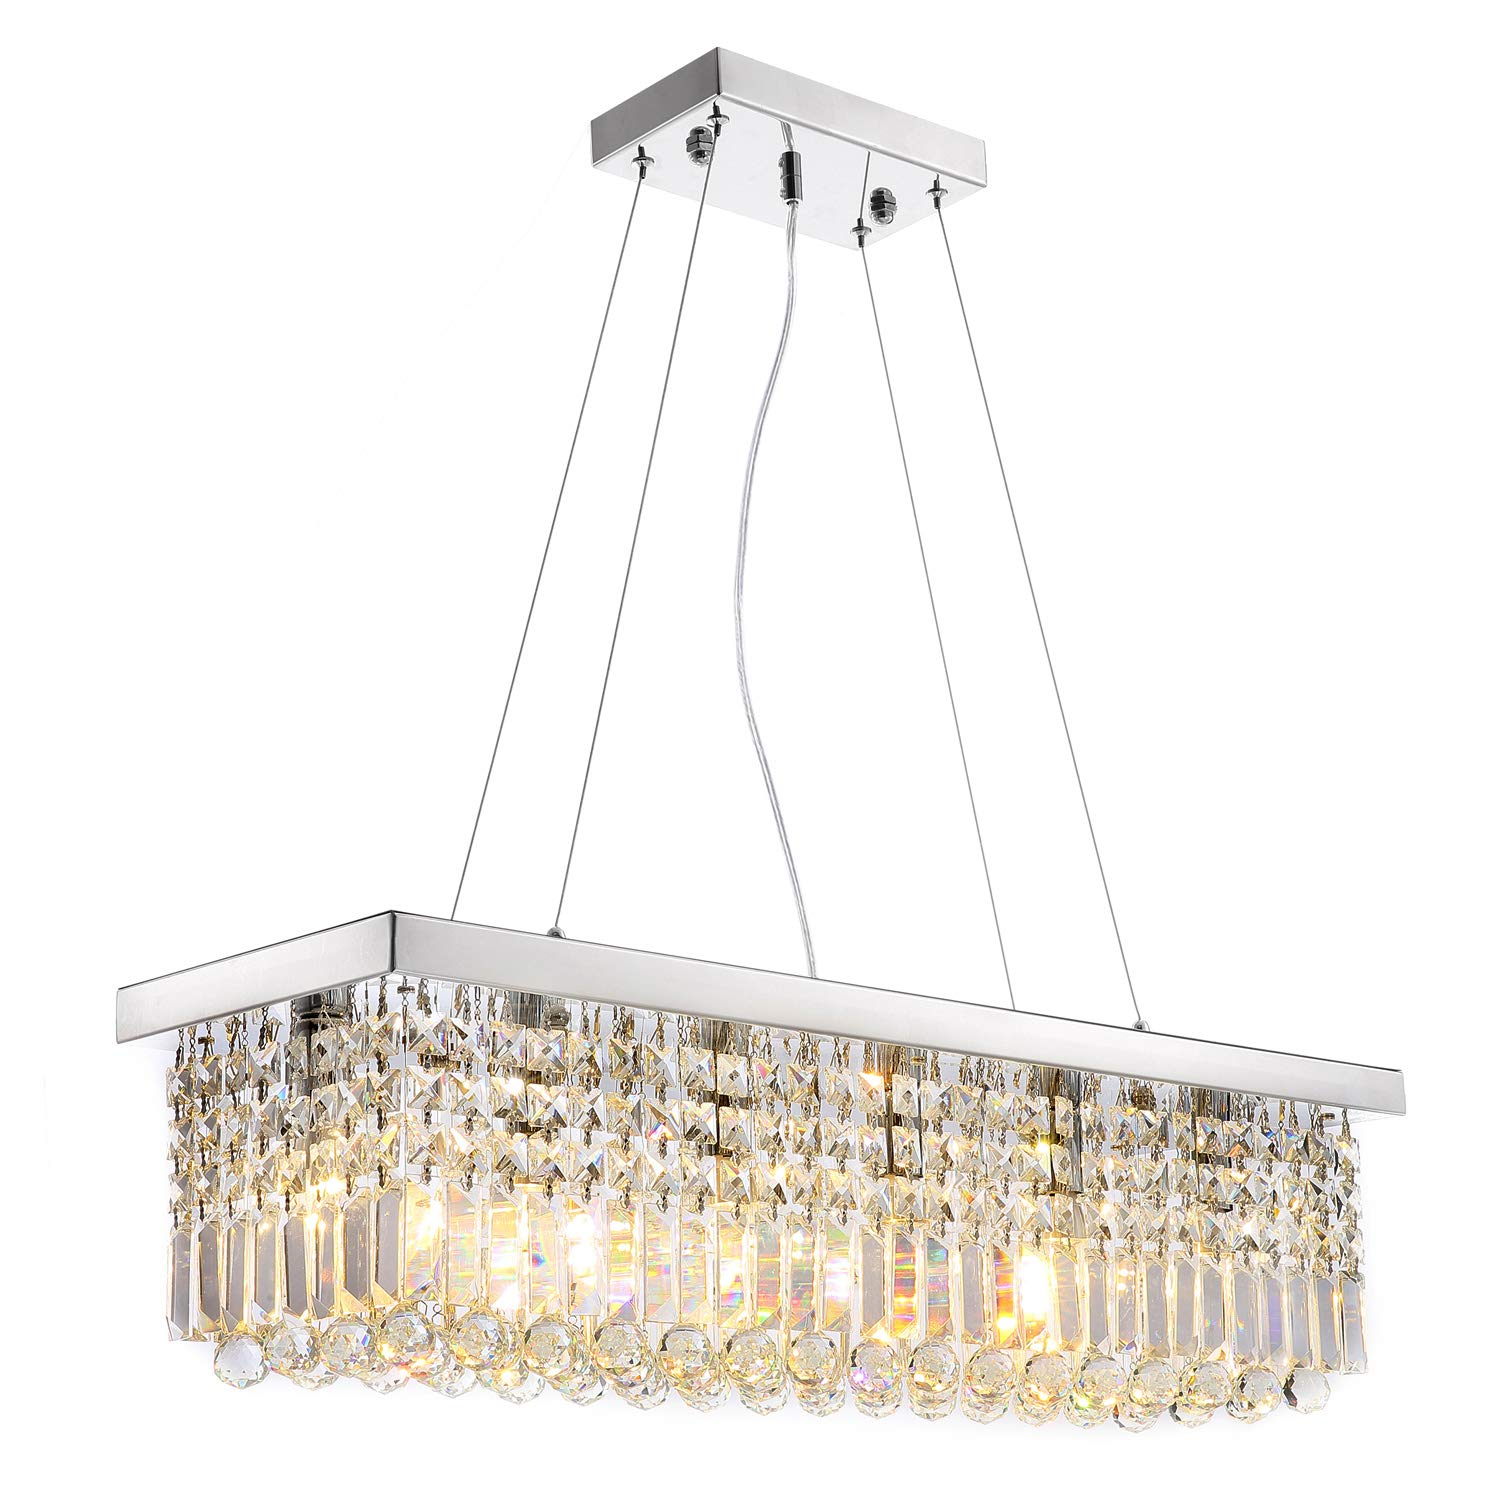 Siljoy L40'' x W10'' Rectangle Modern Crystal Chandelier Lighting Raindrop Pendant Light Dining Room Kitchen Island Hanging Lamp